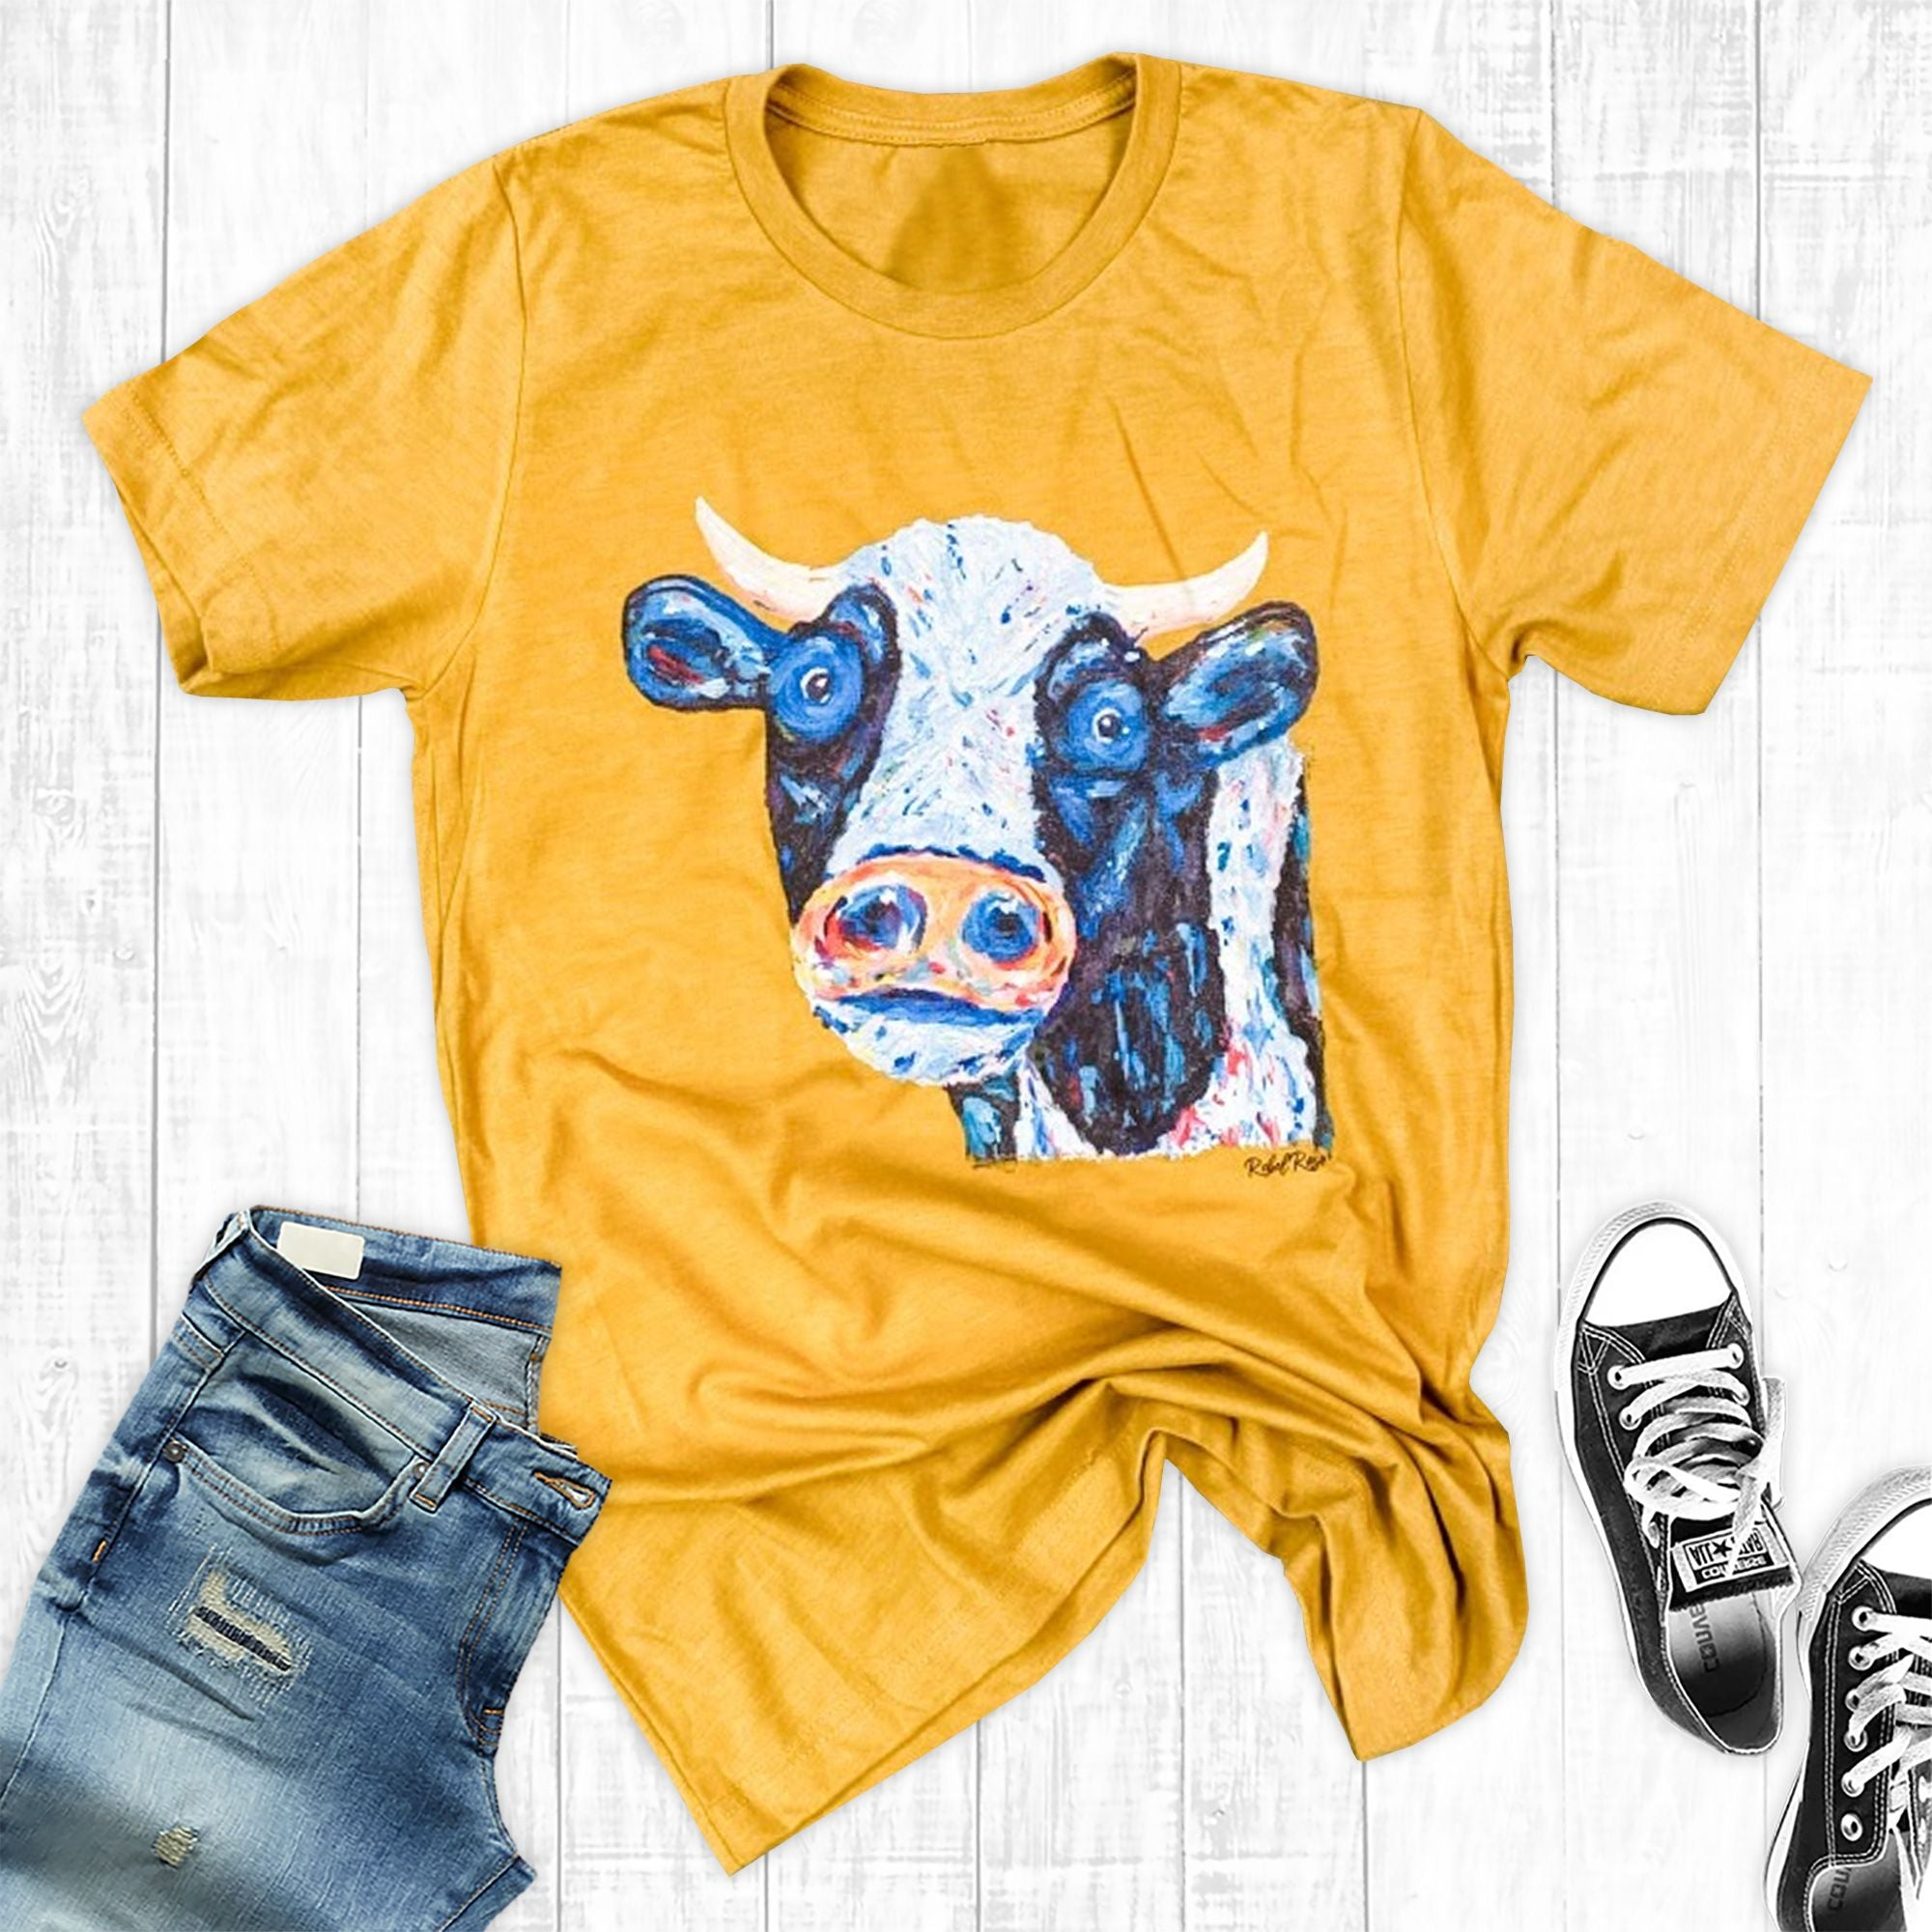 Mustard Painted Cow